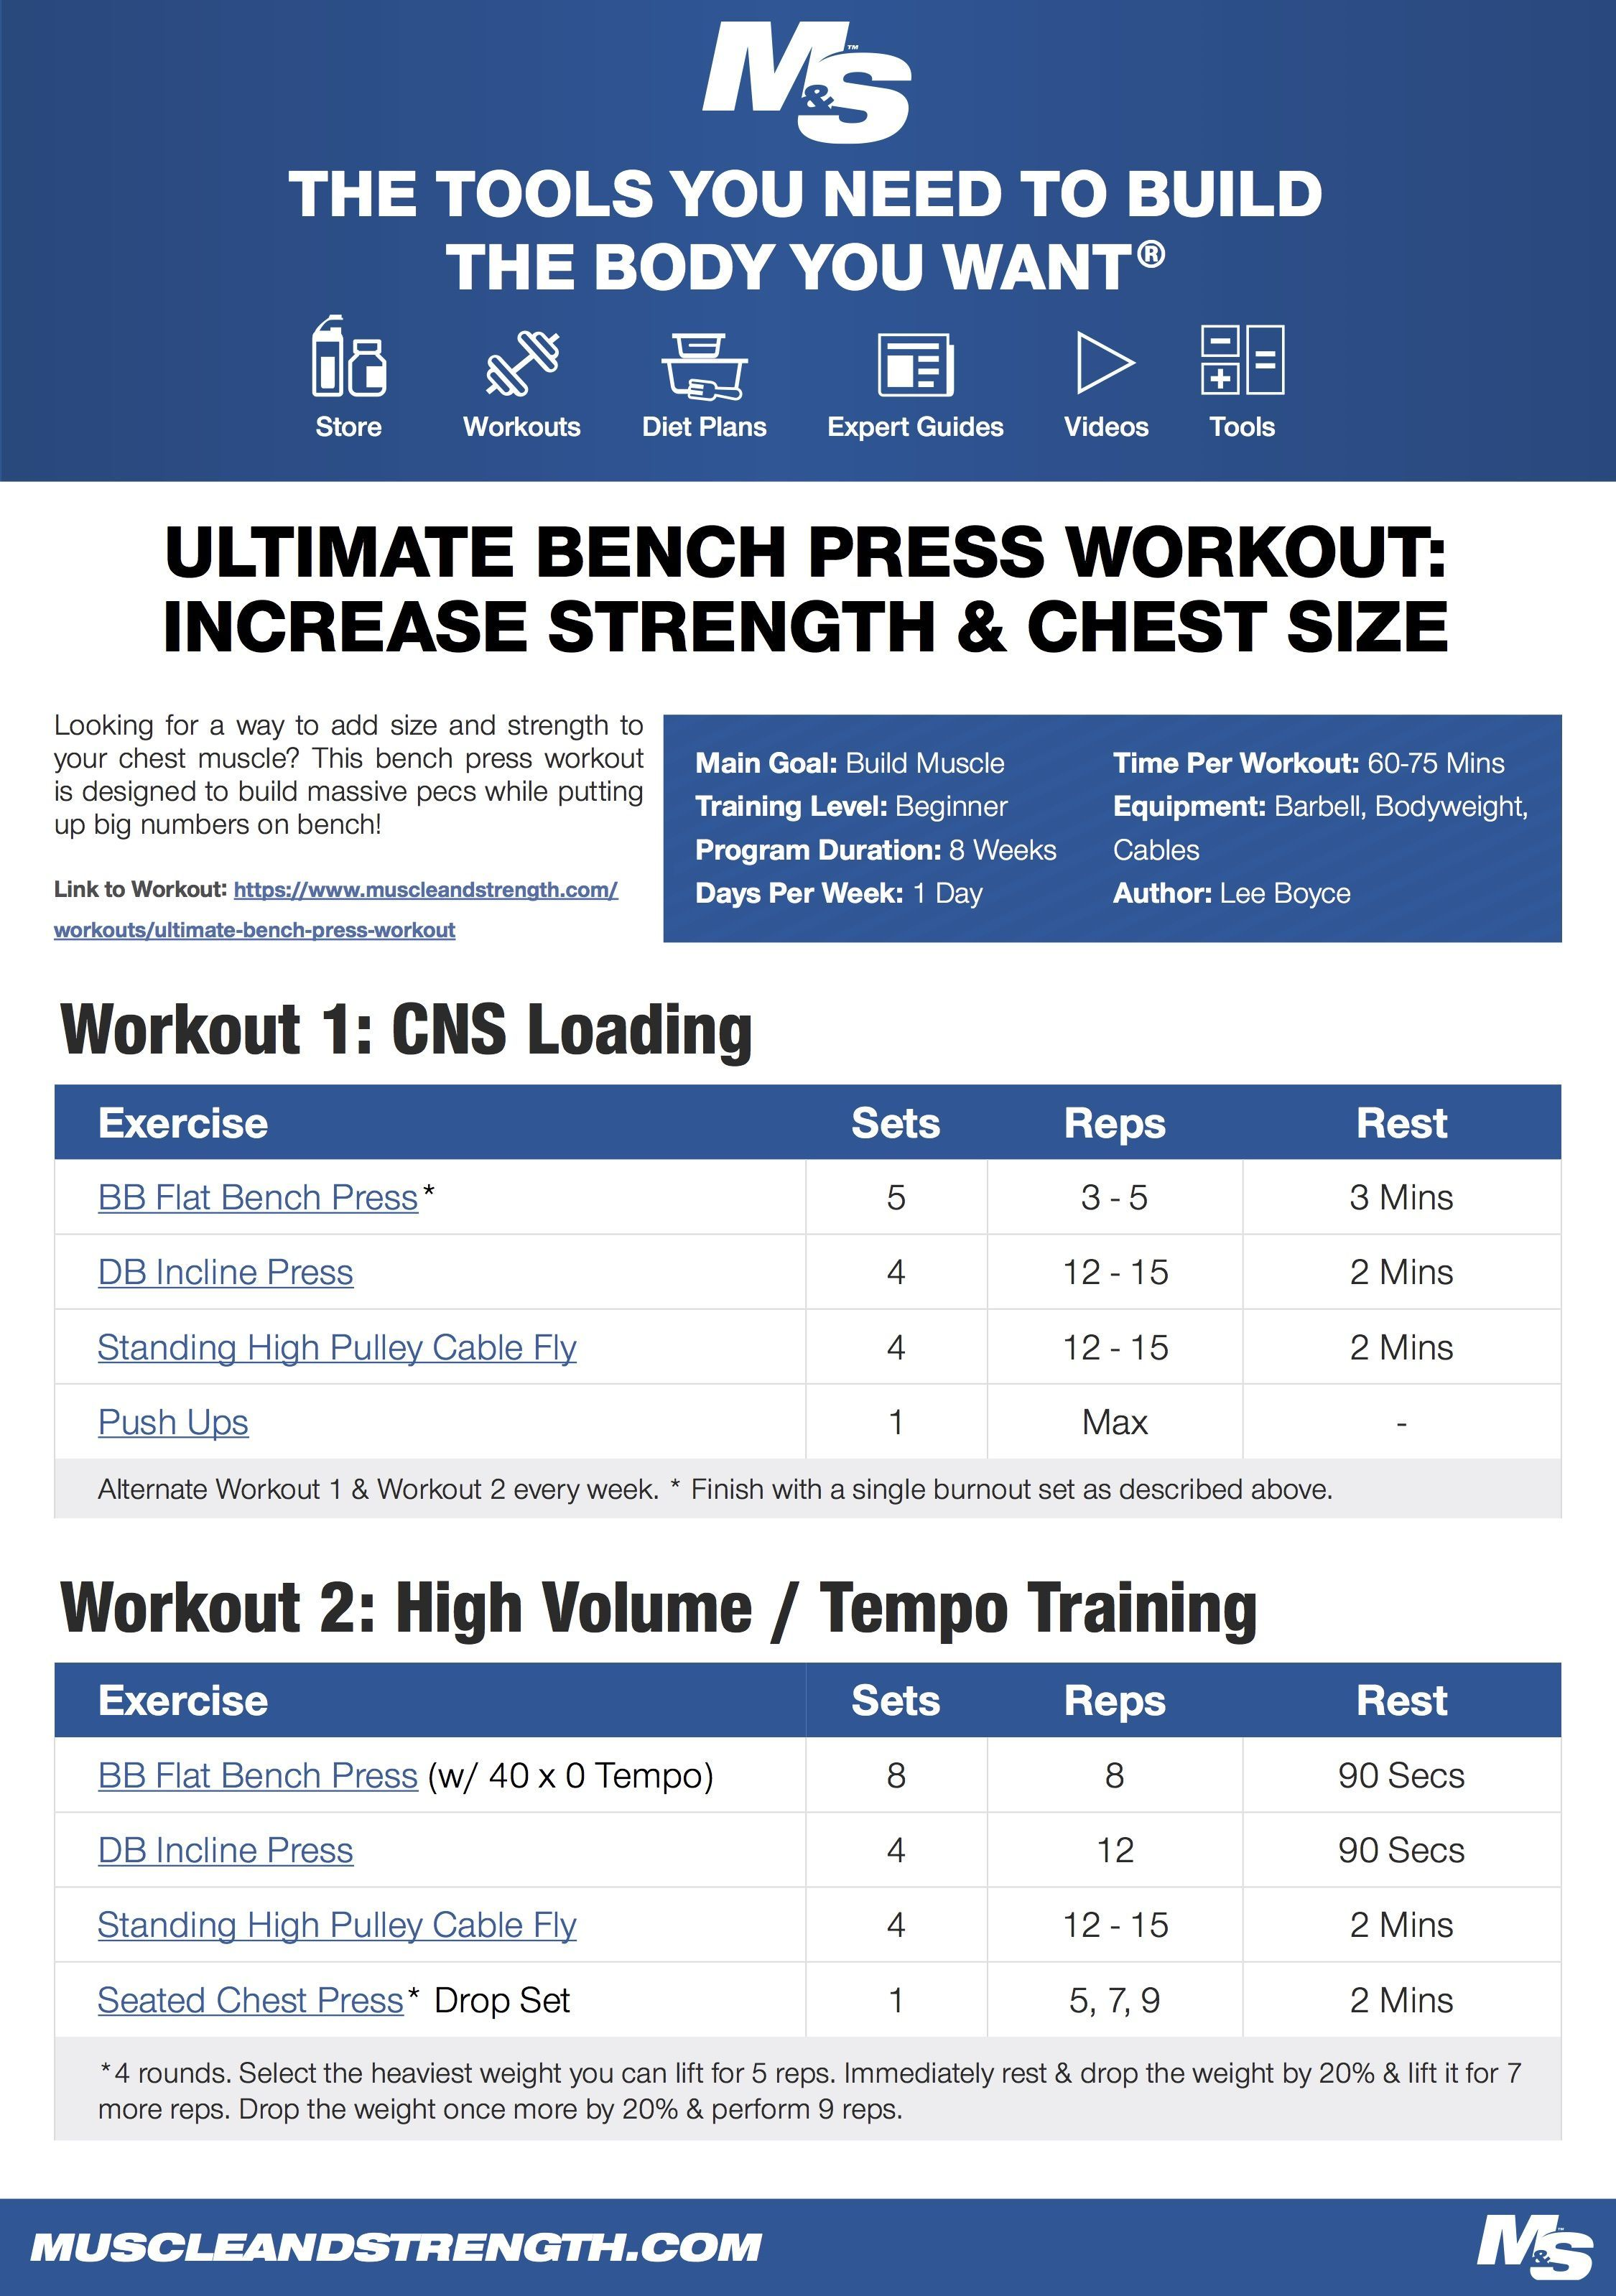 Ultimate Bench Press Workout Increase Strength And Chest Size Bench Press Workout Bench Press Bench Workout